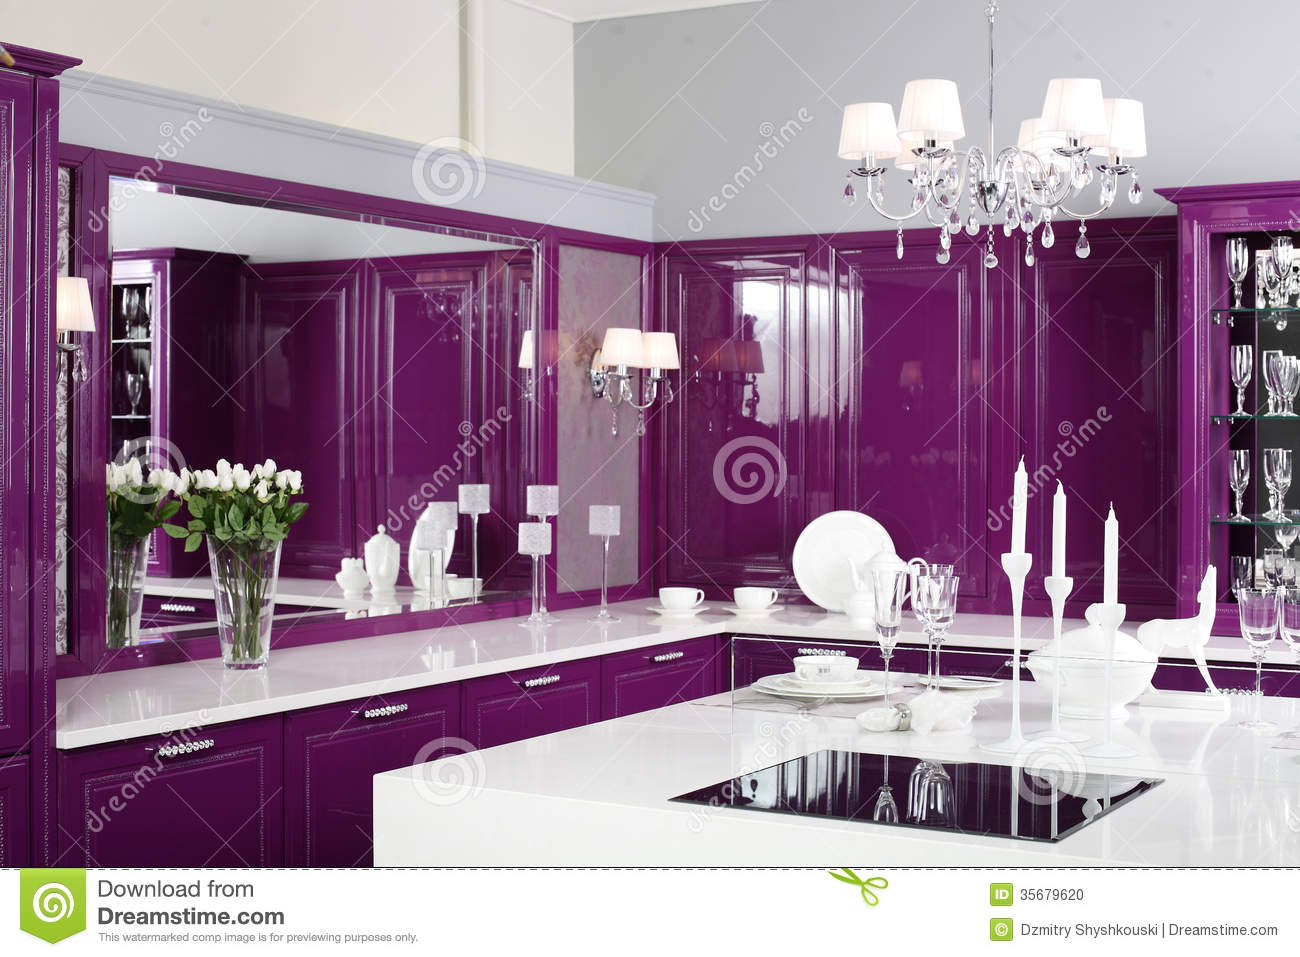 Modern purple kitchen with stylish furniture stock photo image 35679620 - Stylish cooking ...